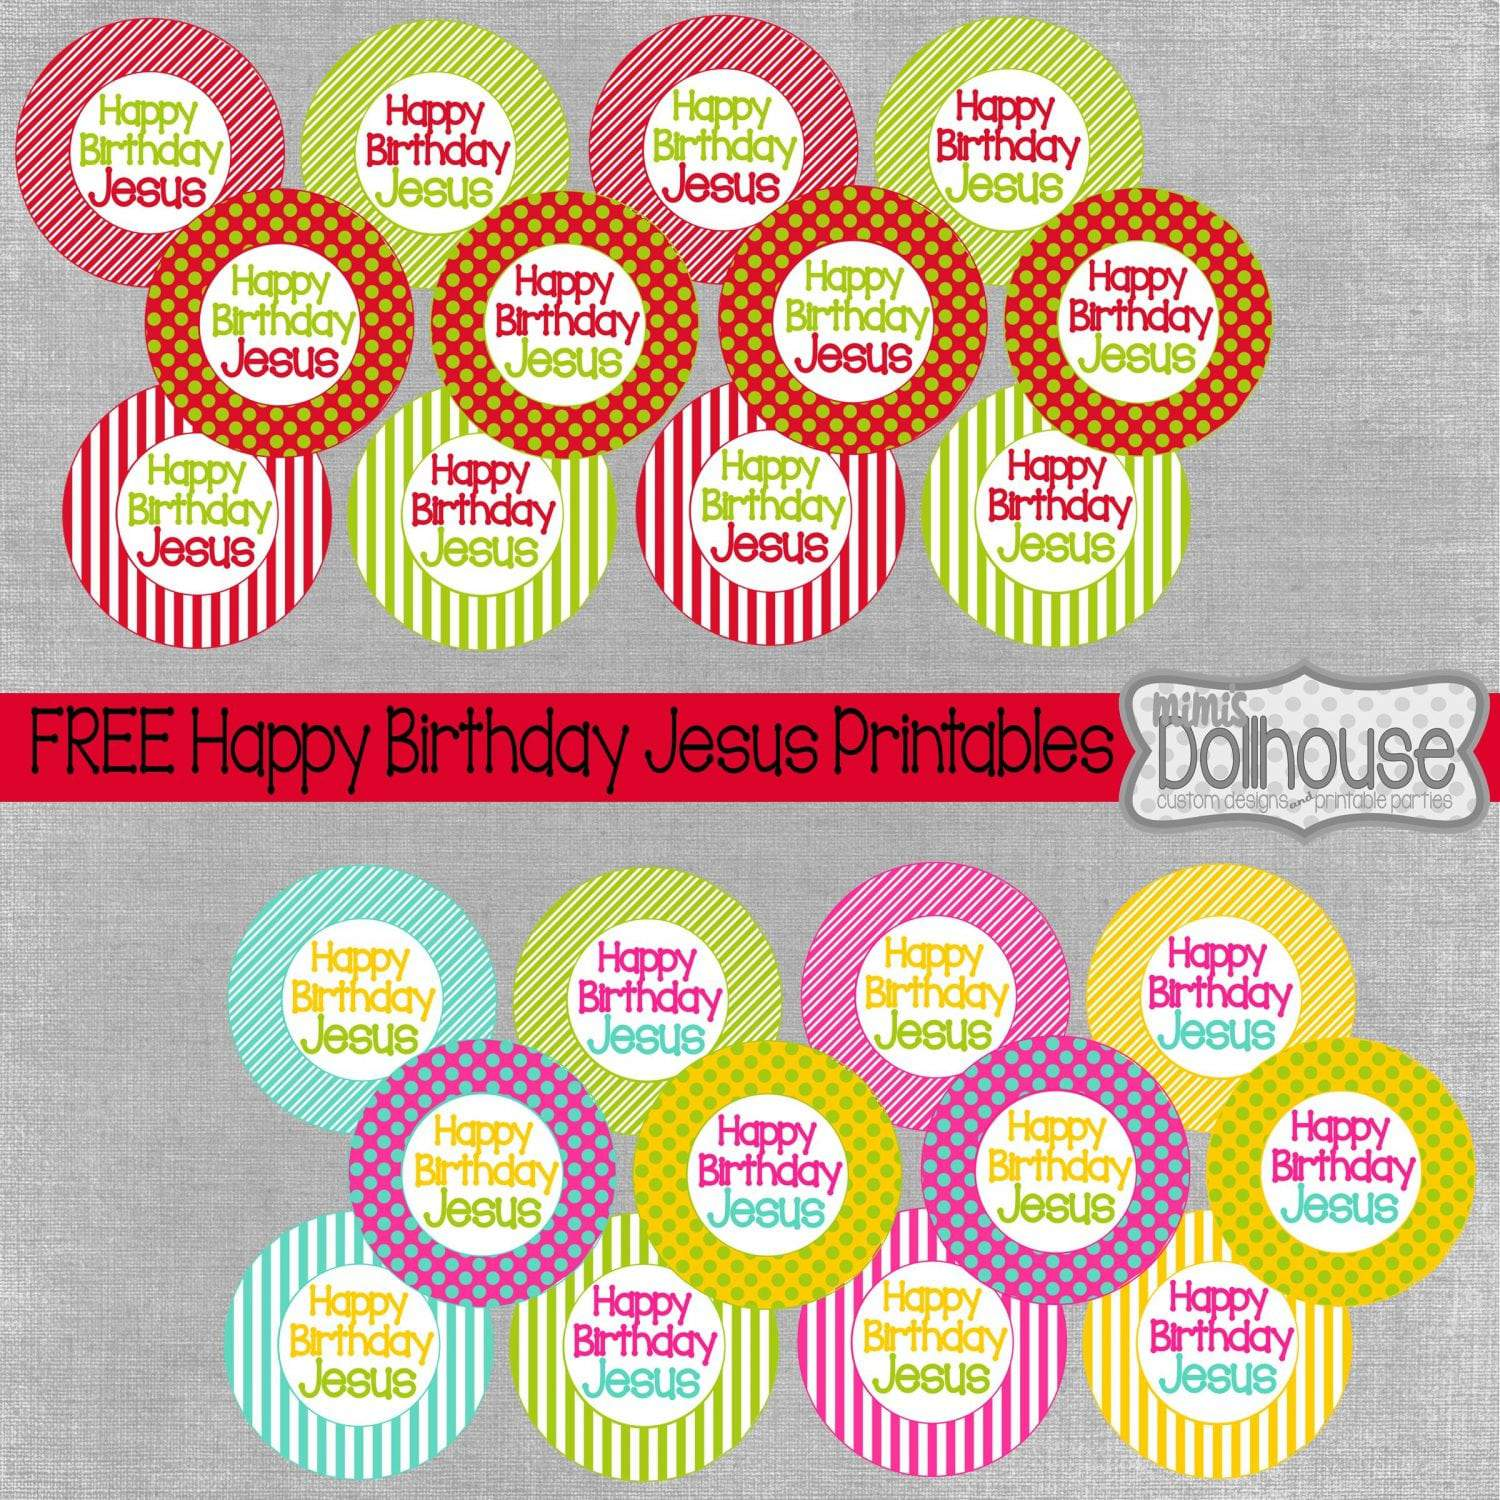 Christmas: Free Happy Birthday Jesus Printables